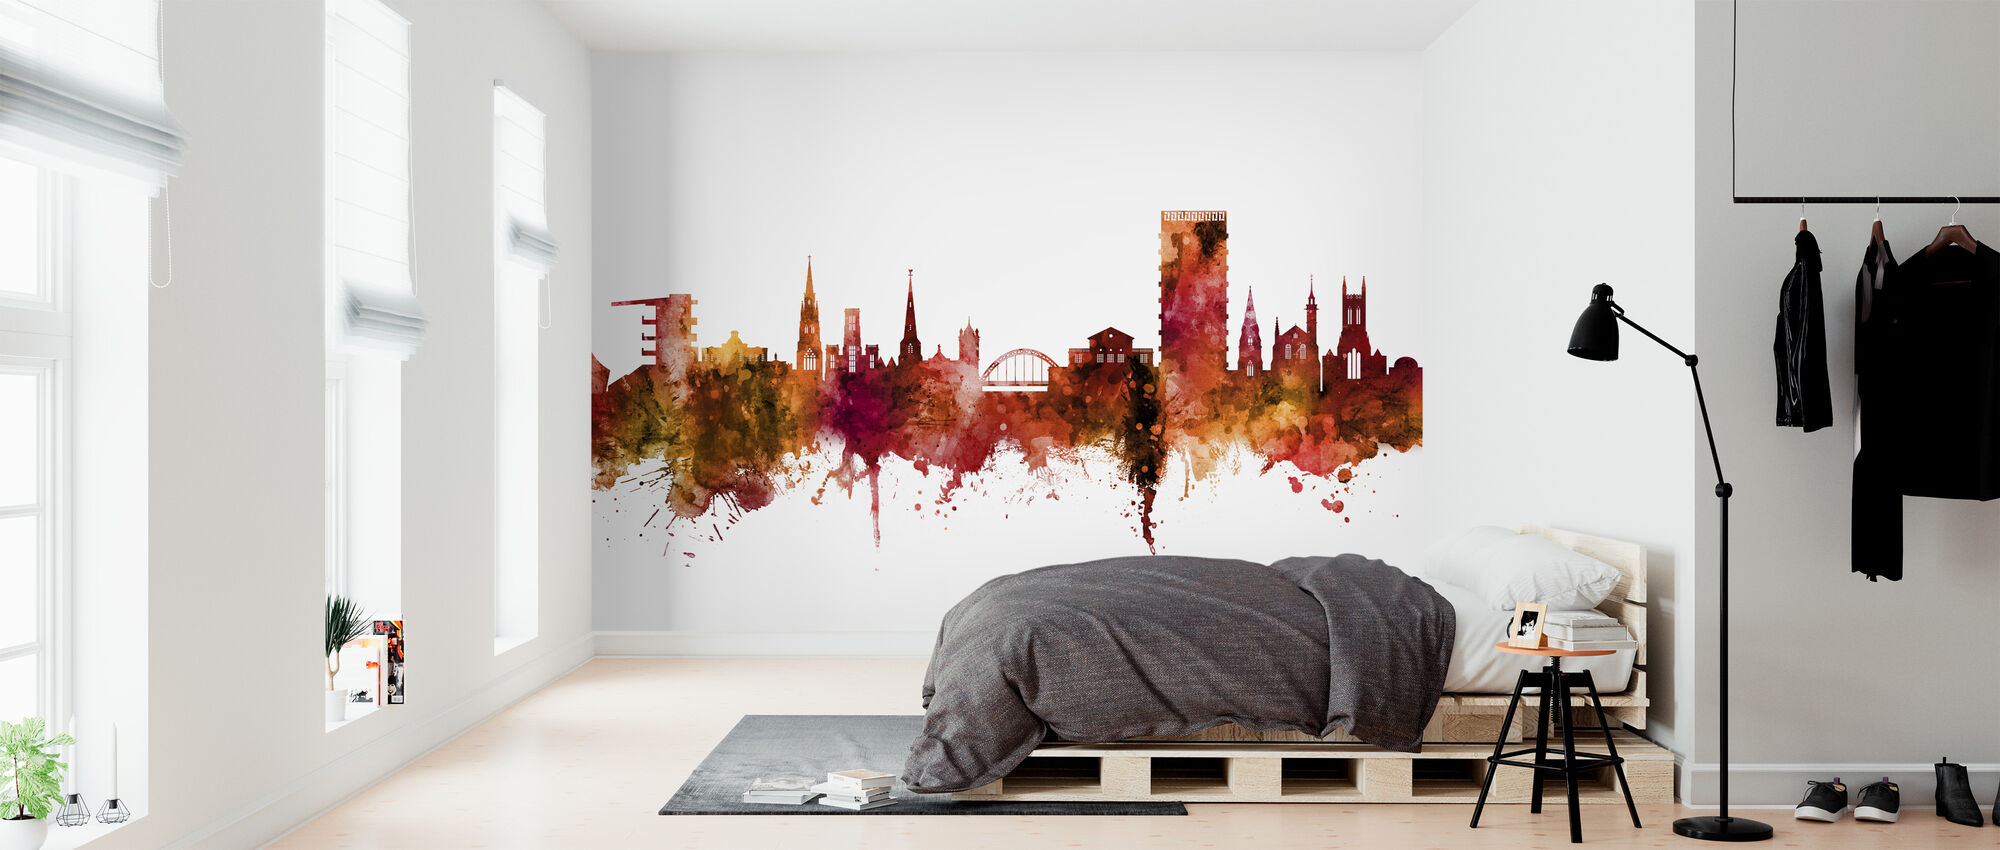 Cheltenham England Skyline - Wallpaper - Bedroom